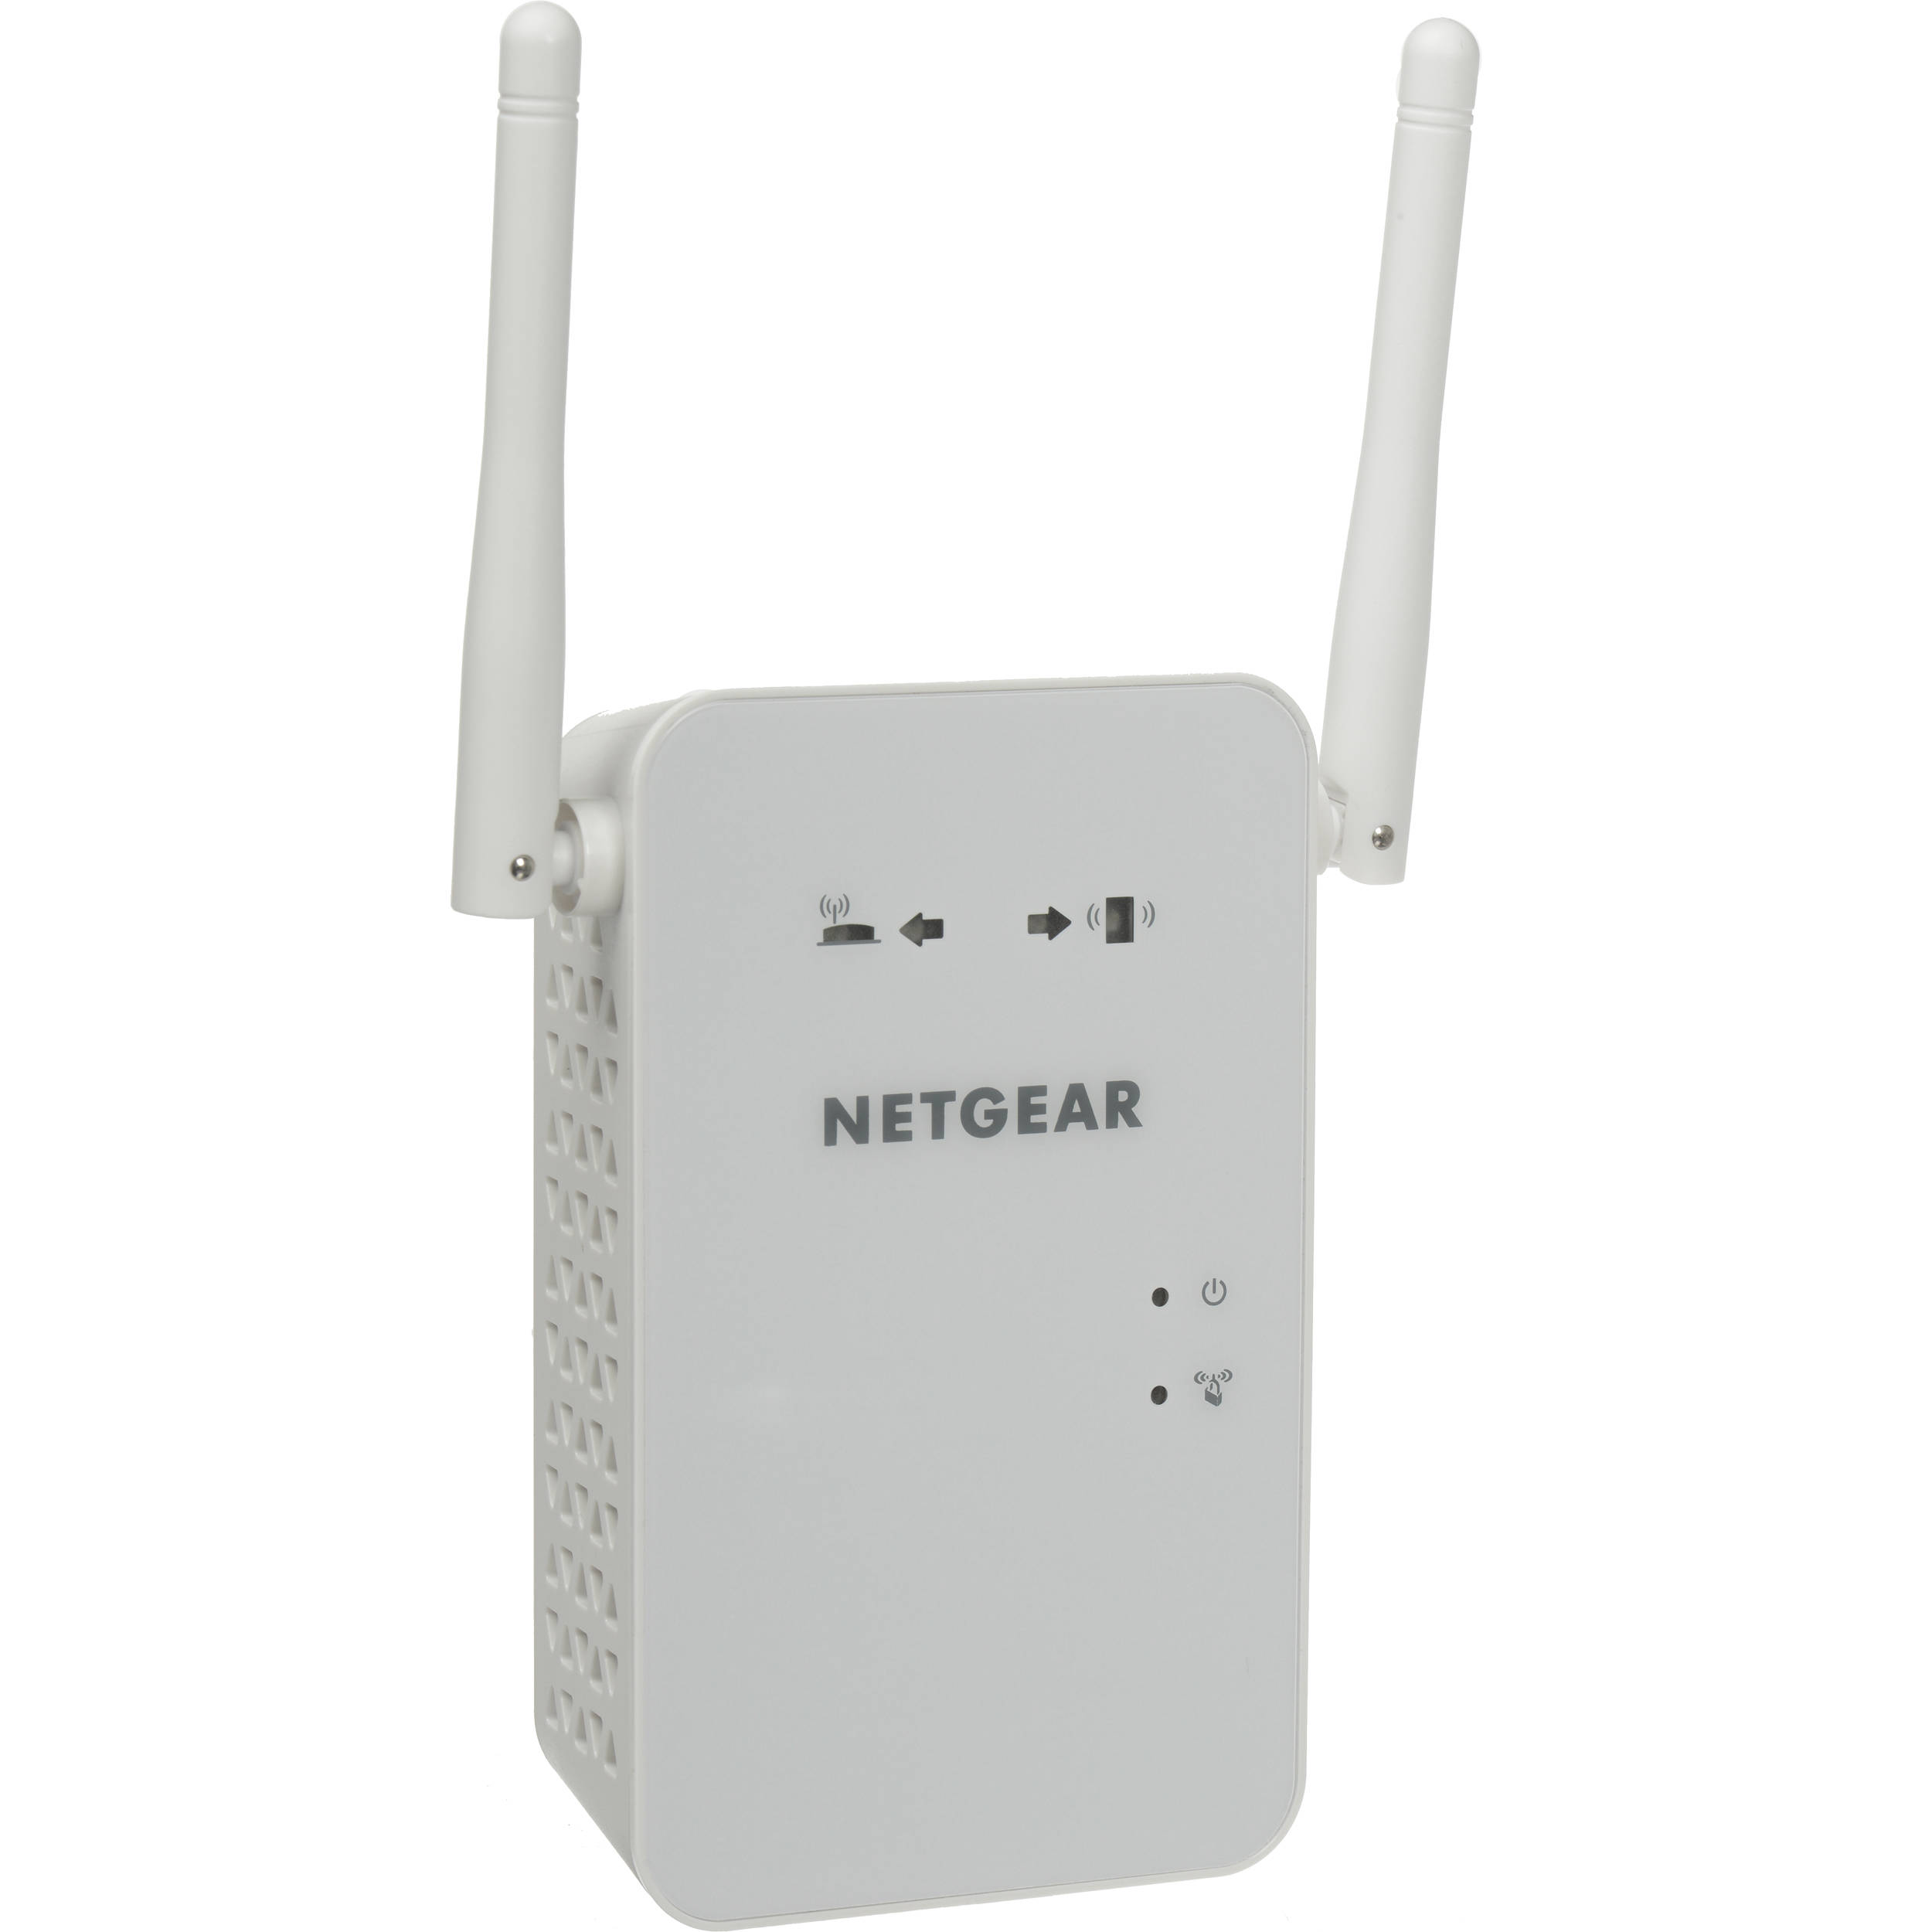 Netgear Reset Instructions, Manuals and Default Settings | RouterReset